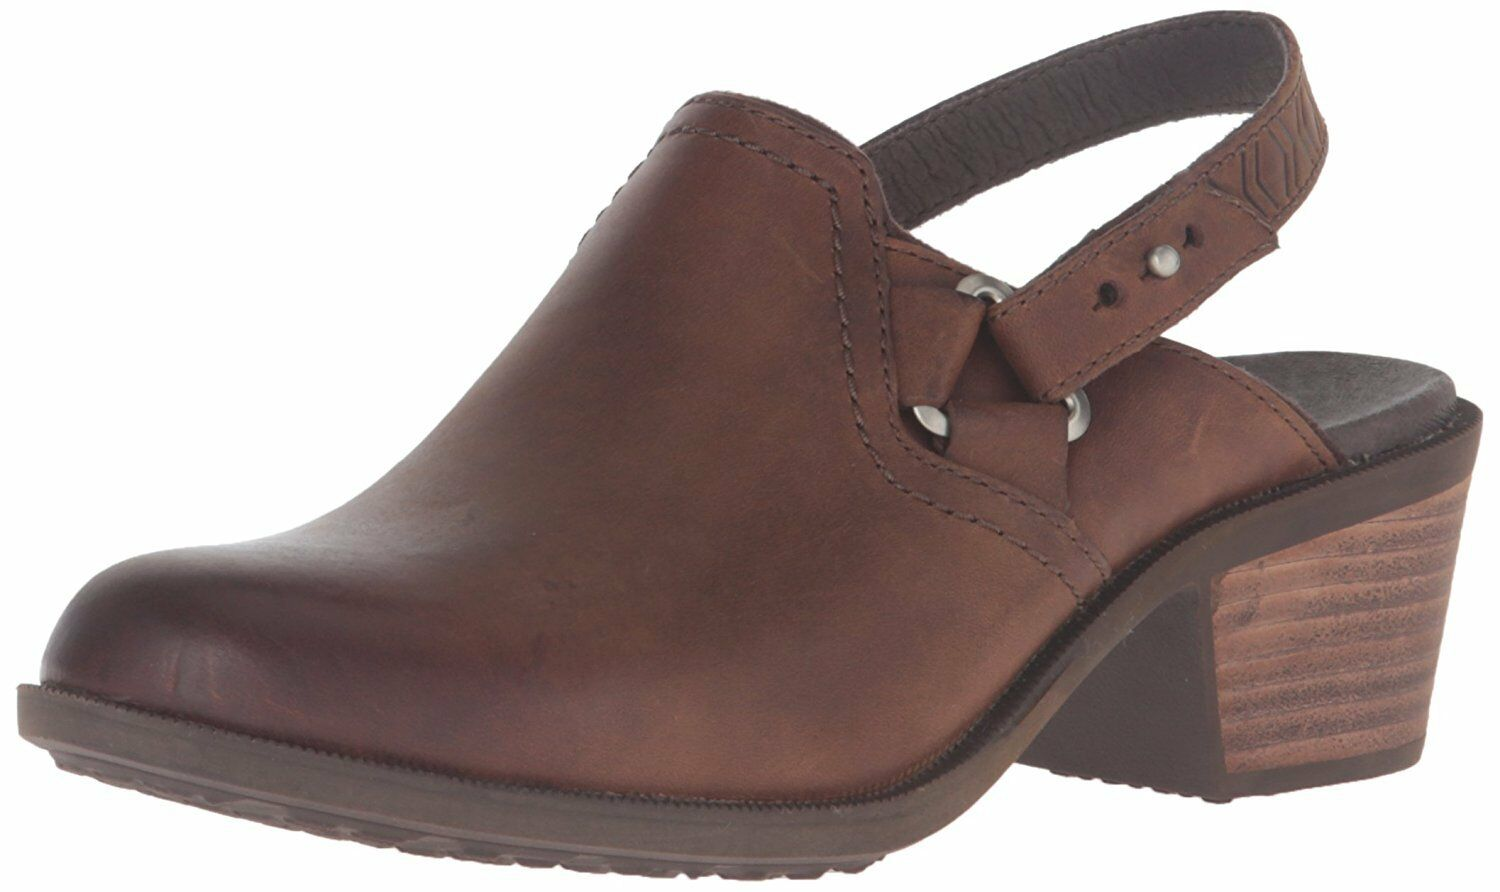 Teva Donna W Foxy Leather Clog - Pick SZ/Color.